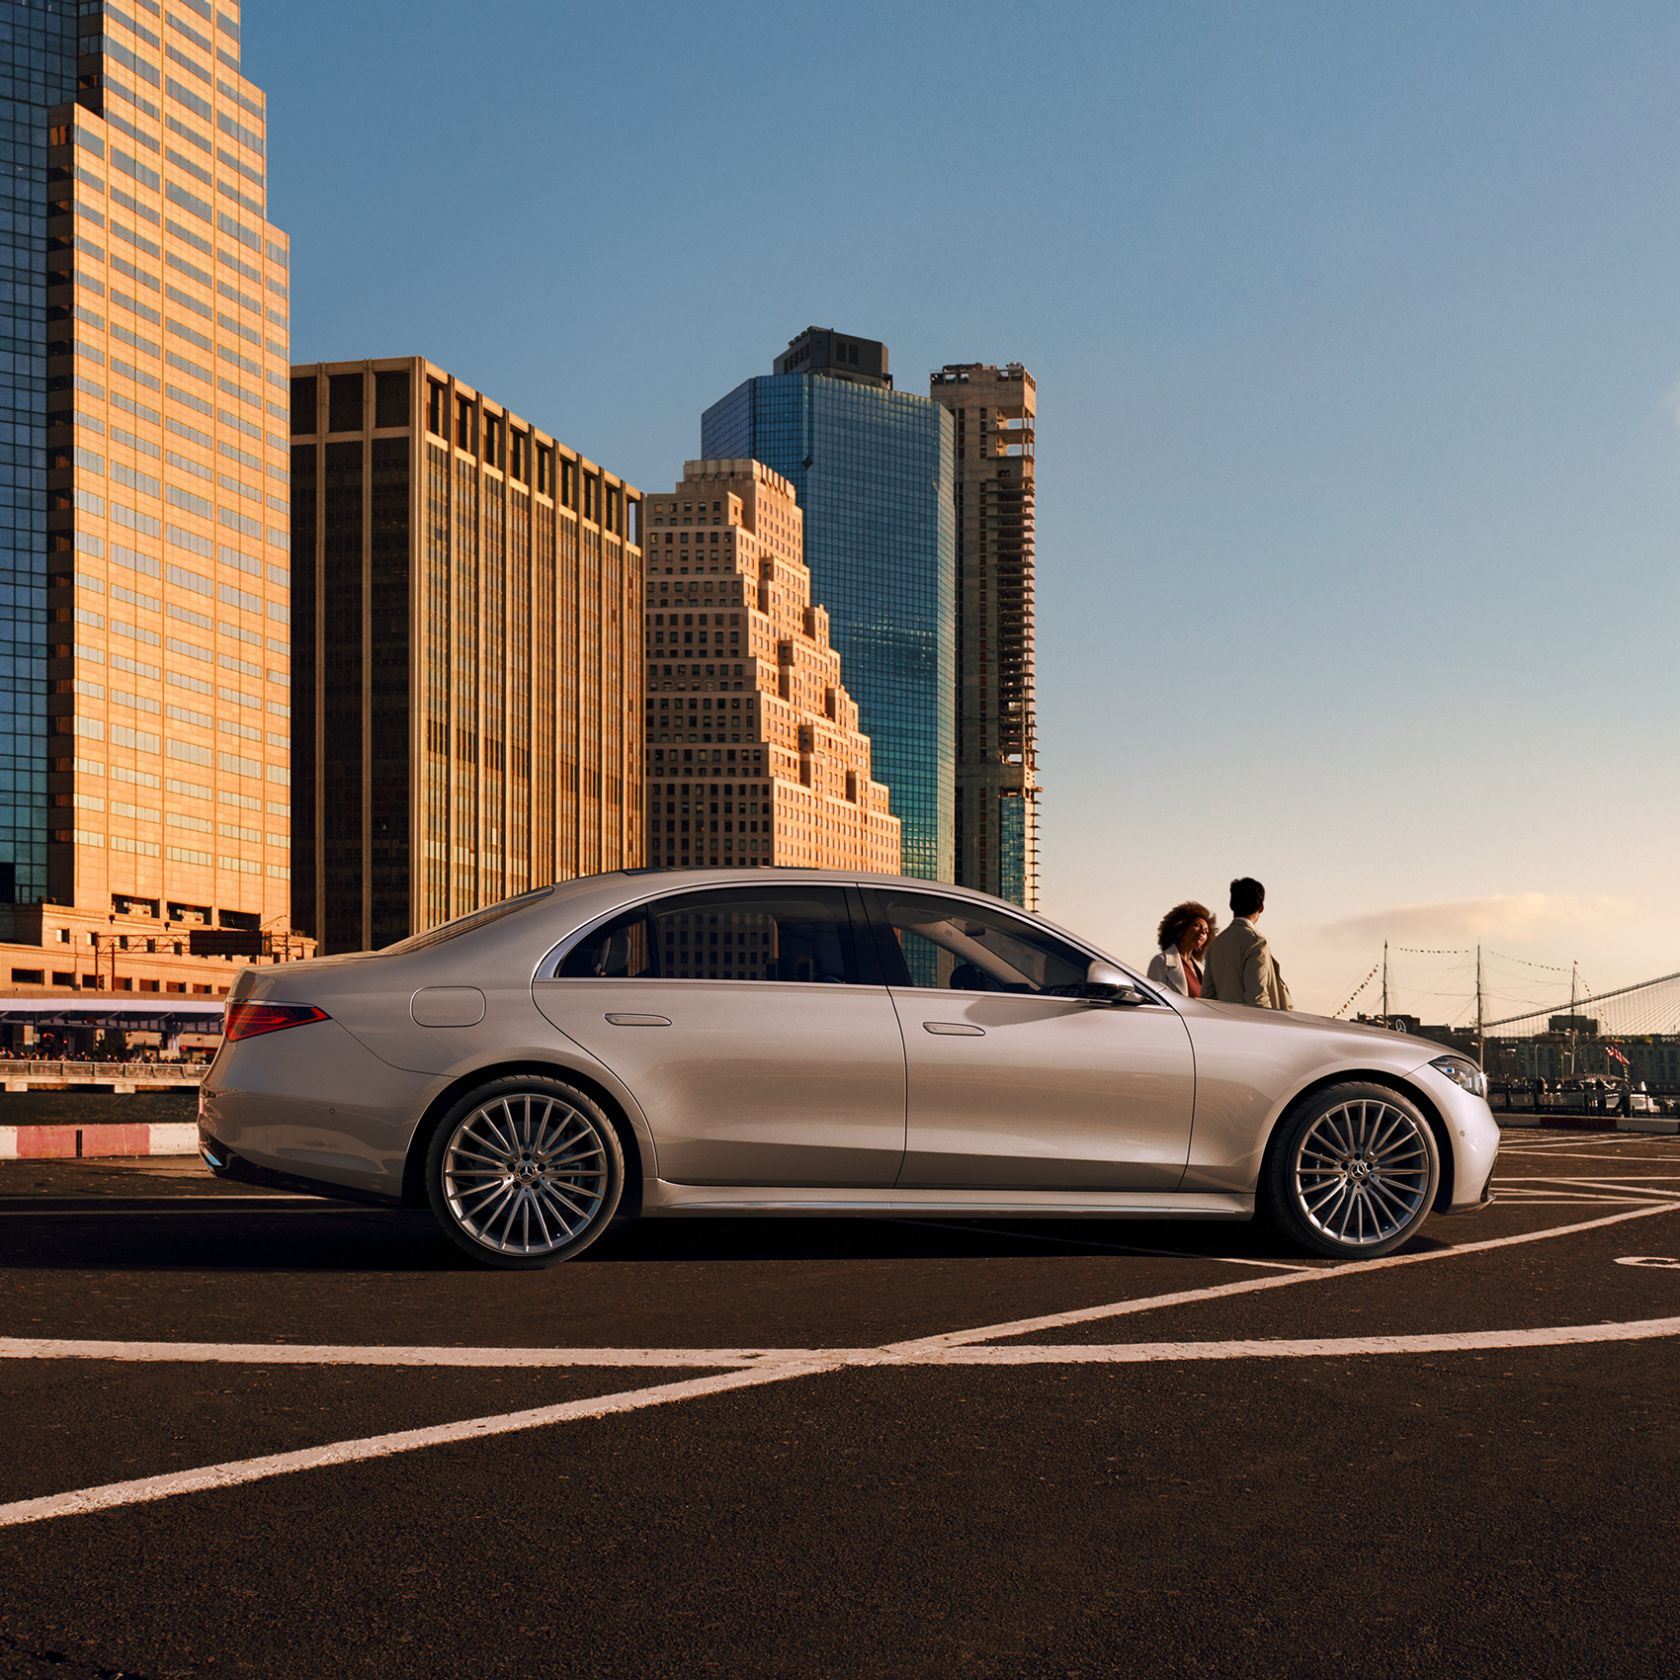 The new 2021 Mercedes-Benz S-Class Saloon (WV 223): A man leaning to the side against the front of the S-Class.